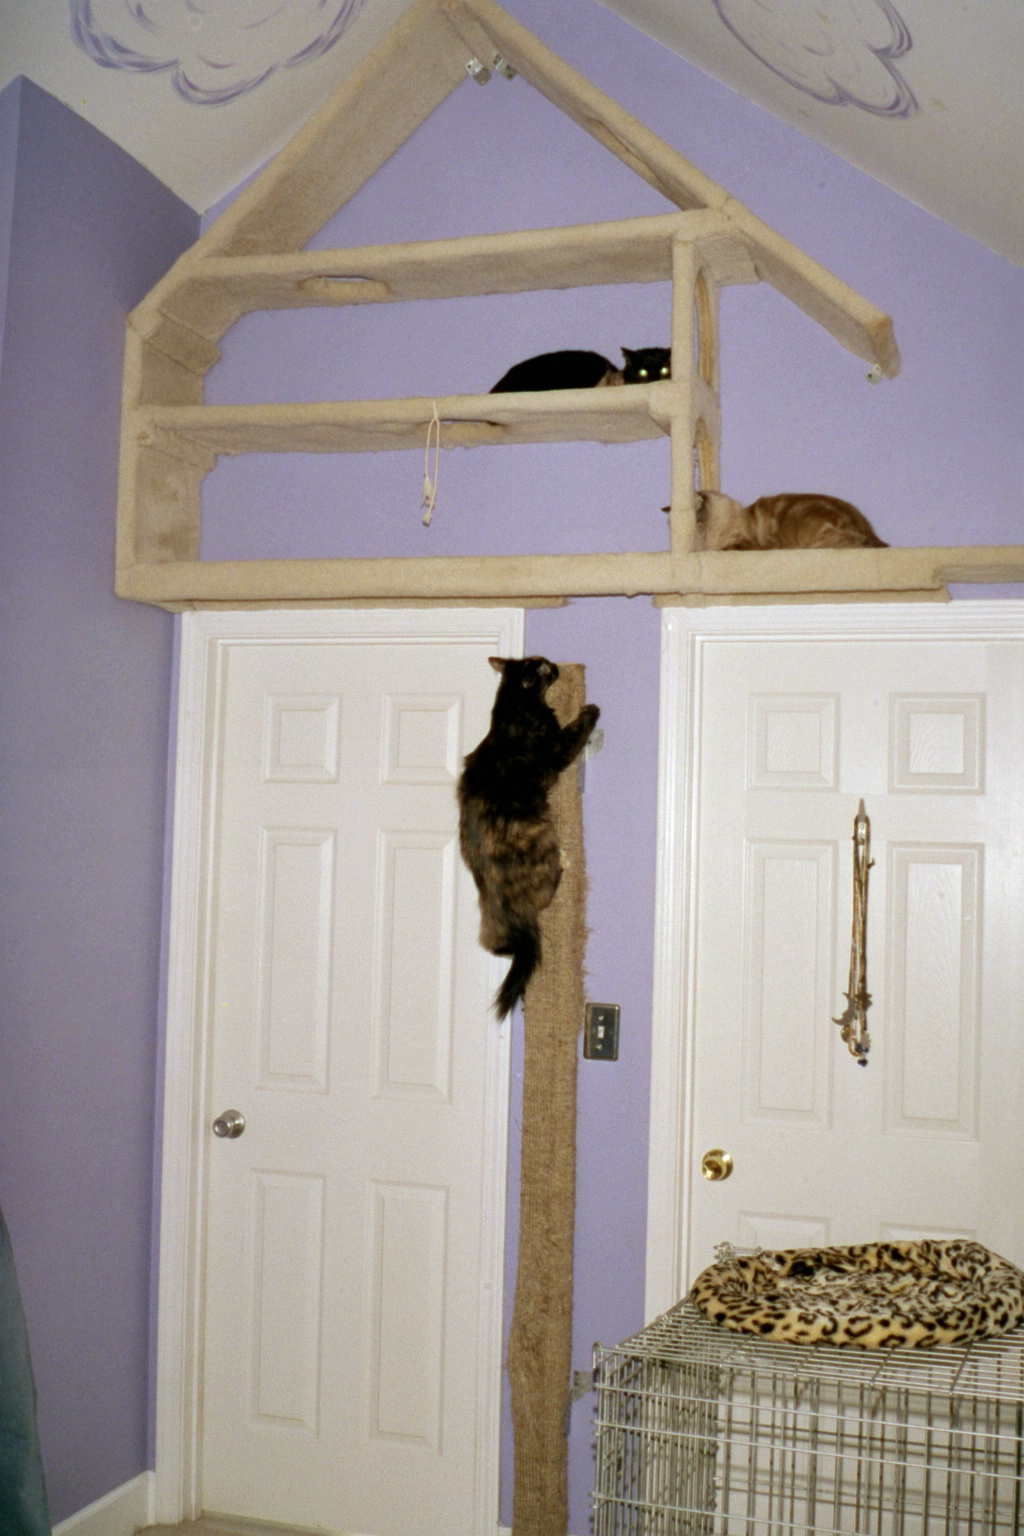 The first version of our kitty treehouse.